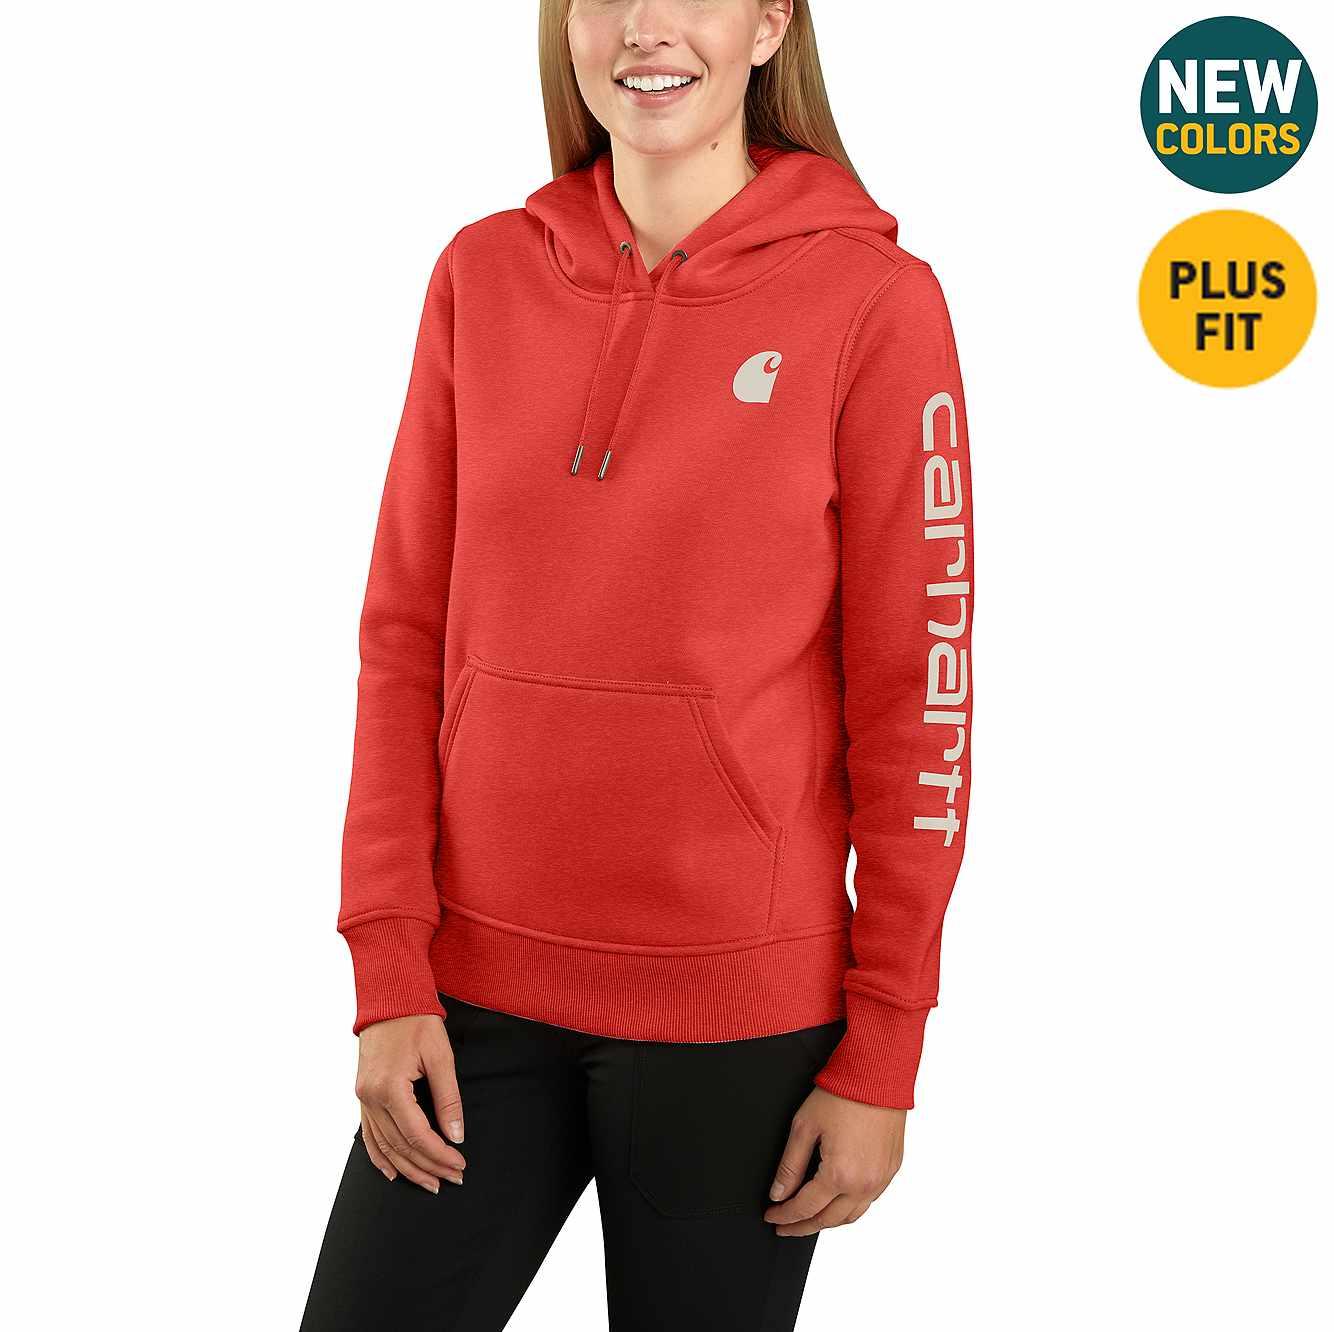 Picture of Clarksburg Graphic Sleeve Pullover Sweatshirt in Ruby Heather